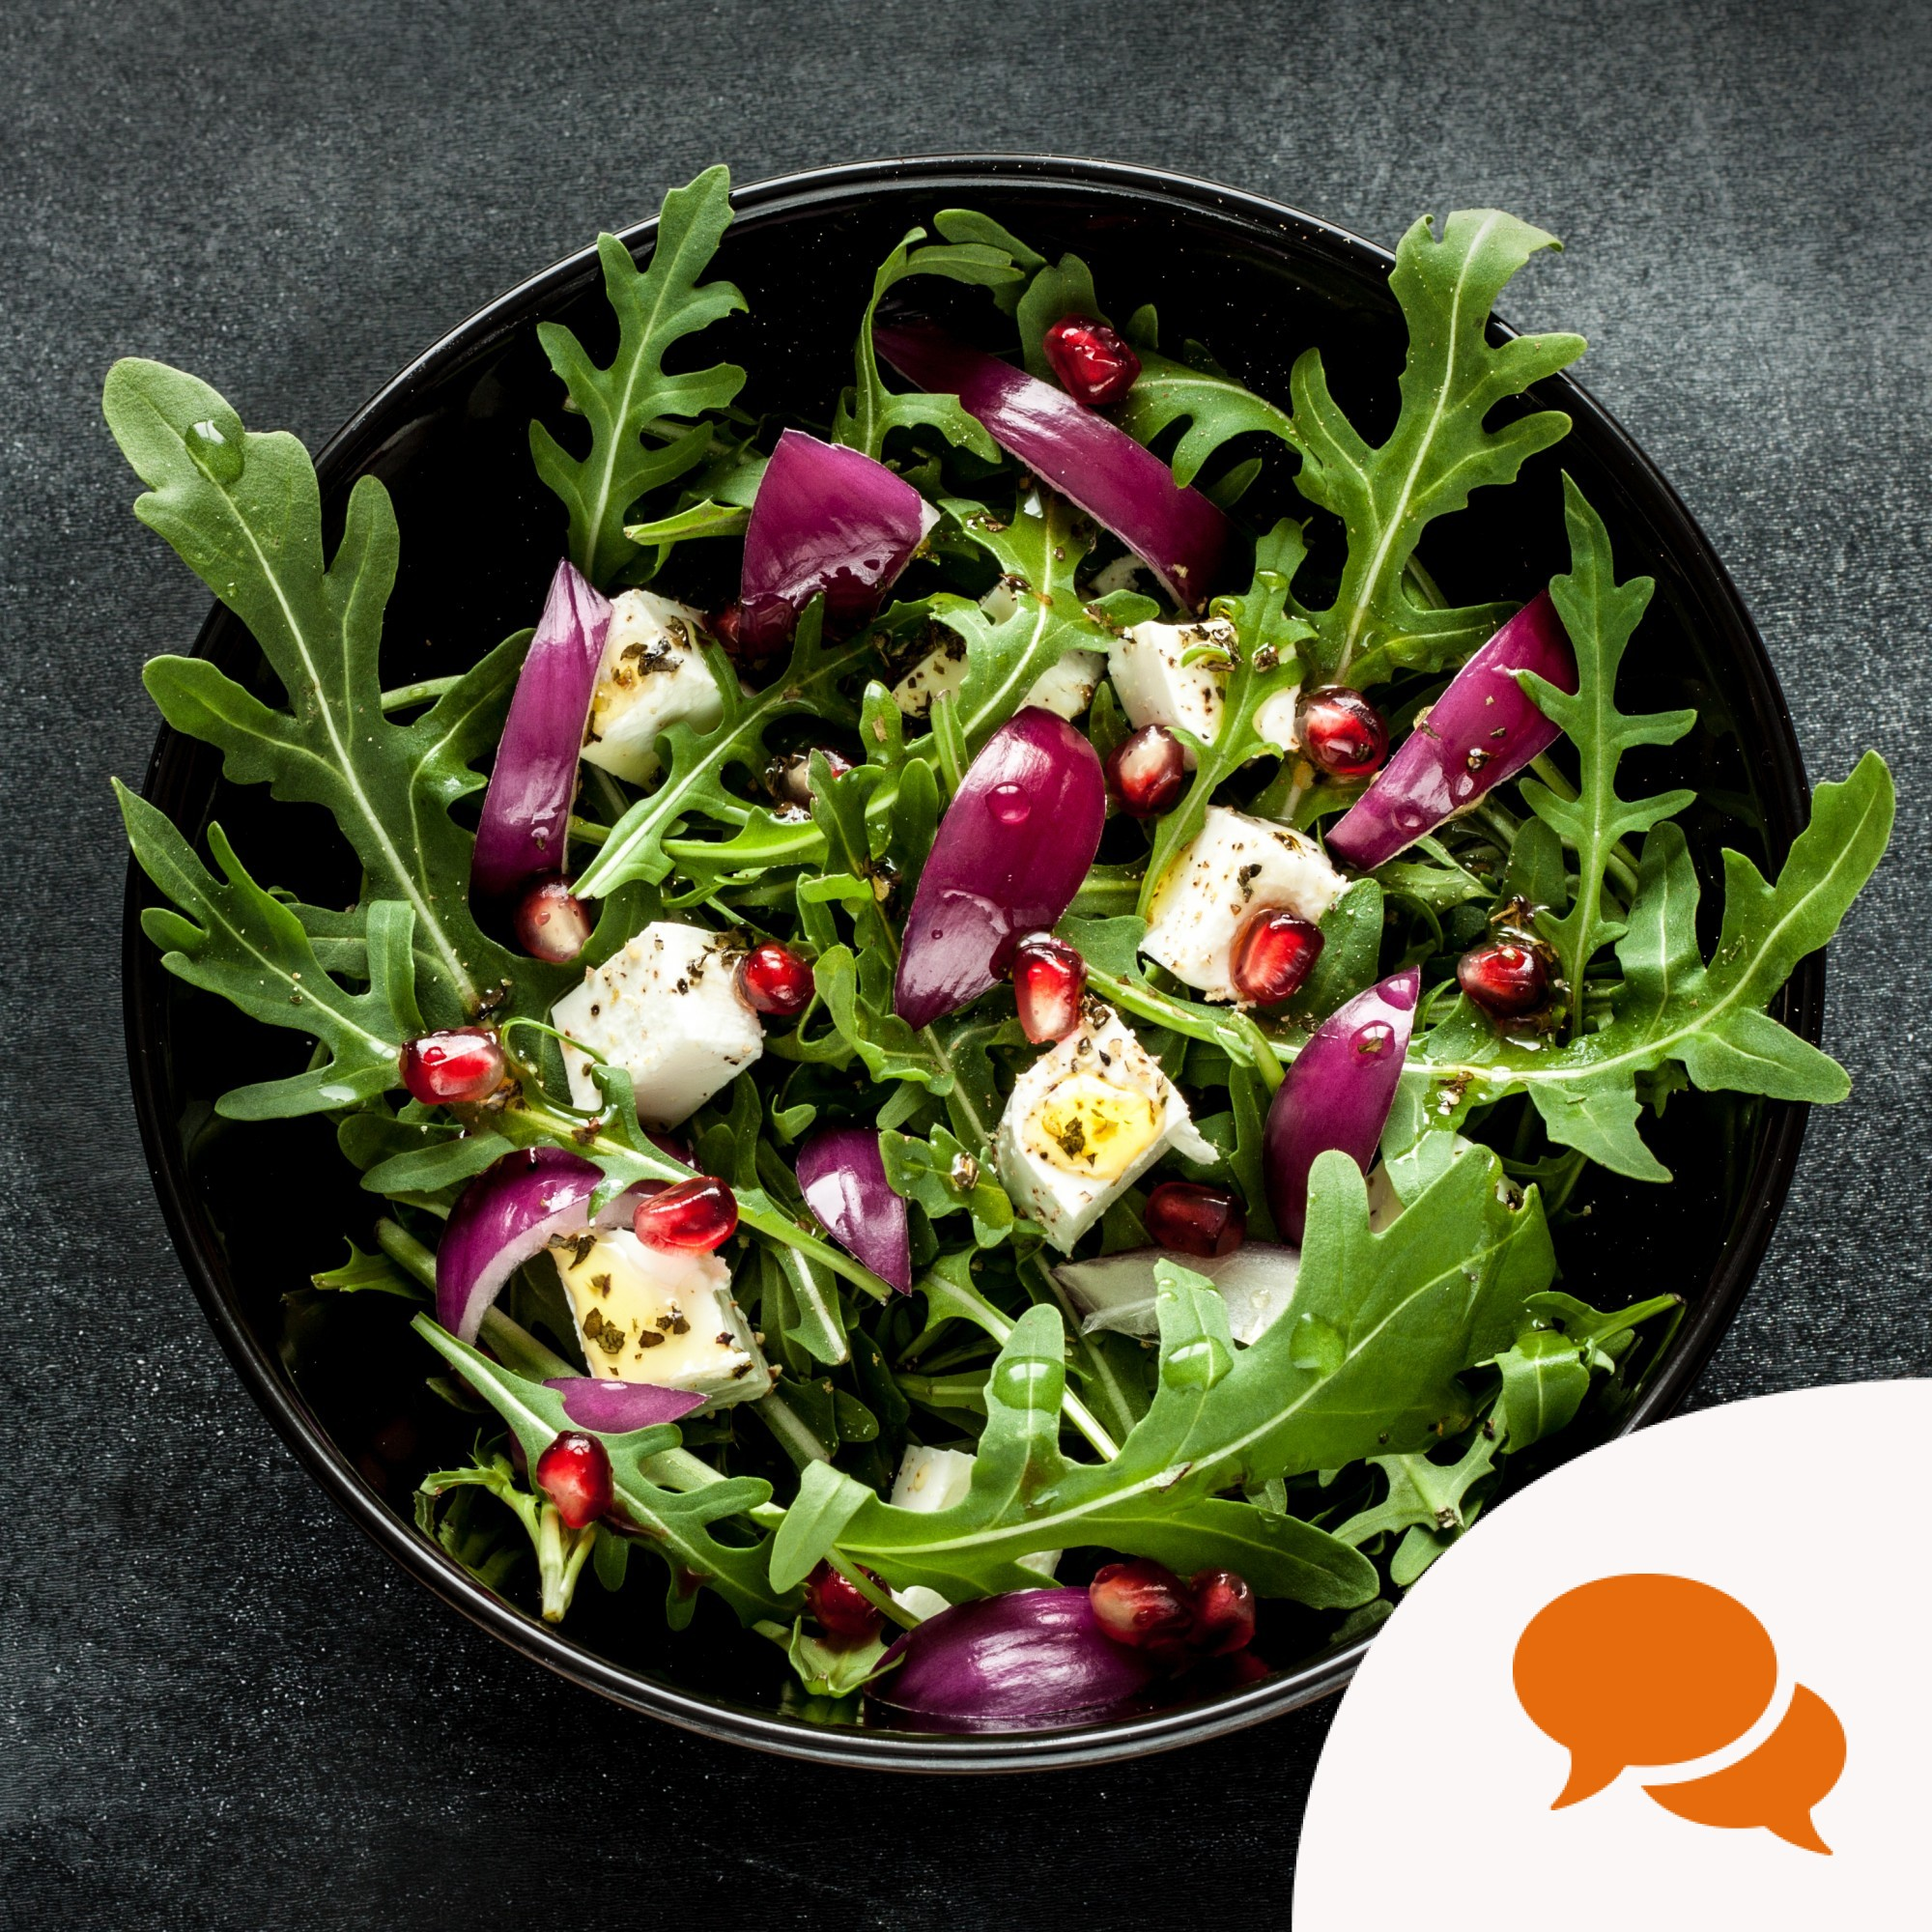 Rocket's peppery taste is perfect for any salad